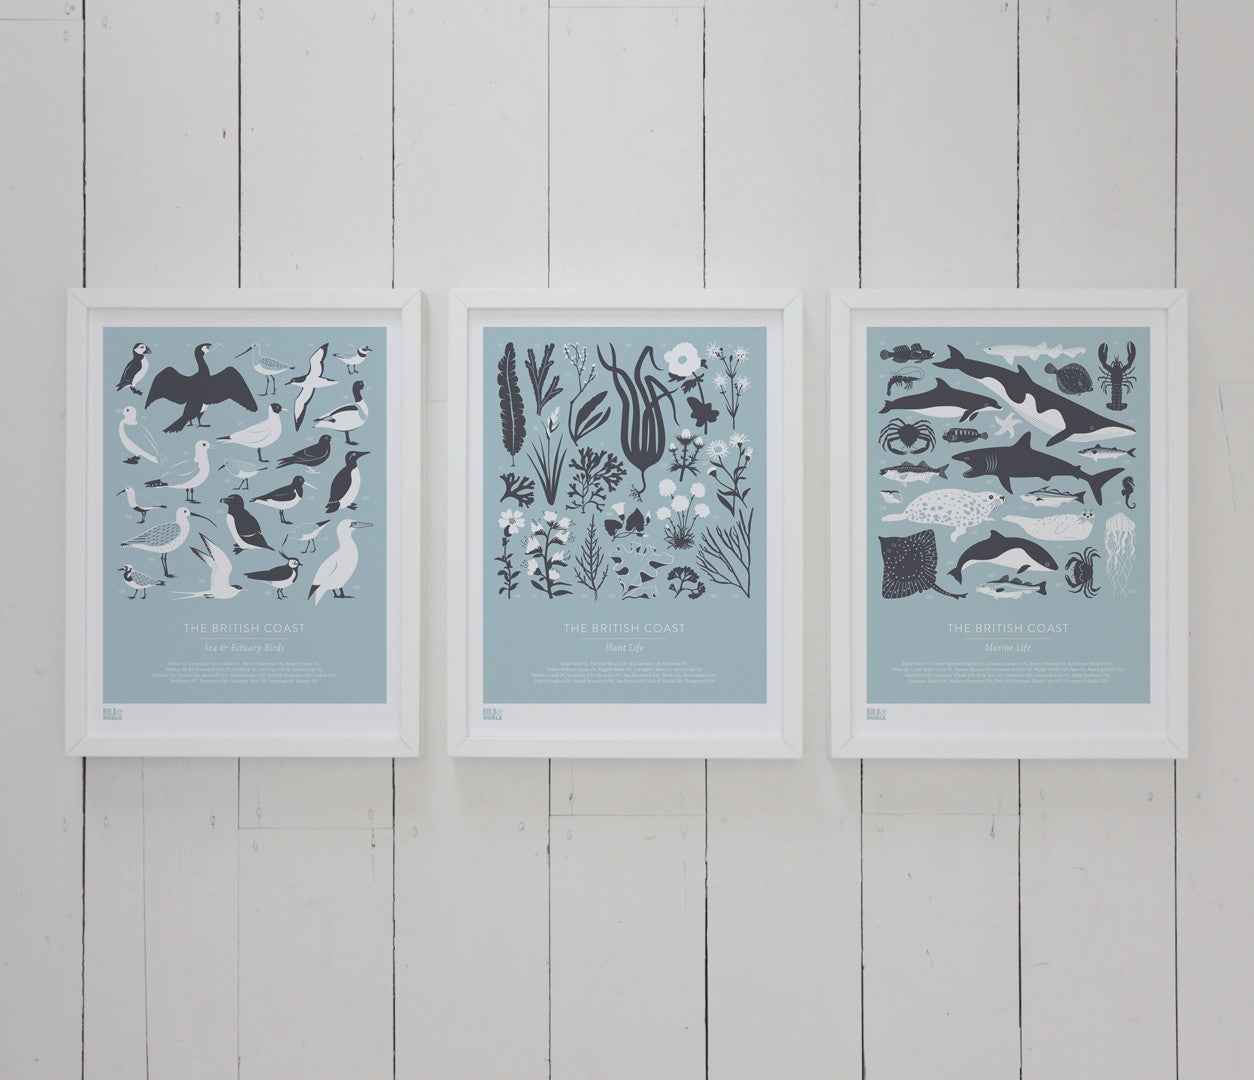 'British Coast: Set of 3' Prints in Duck Egg Blue